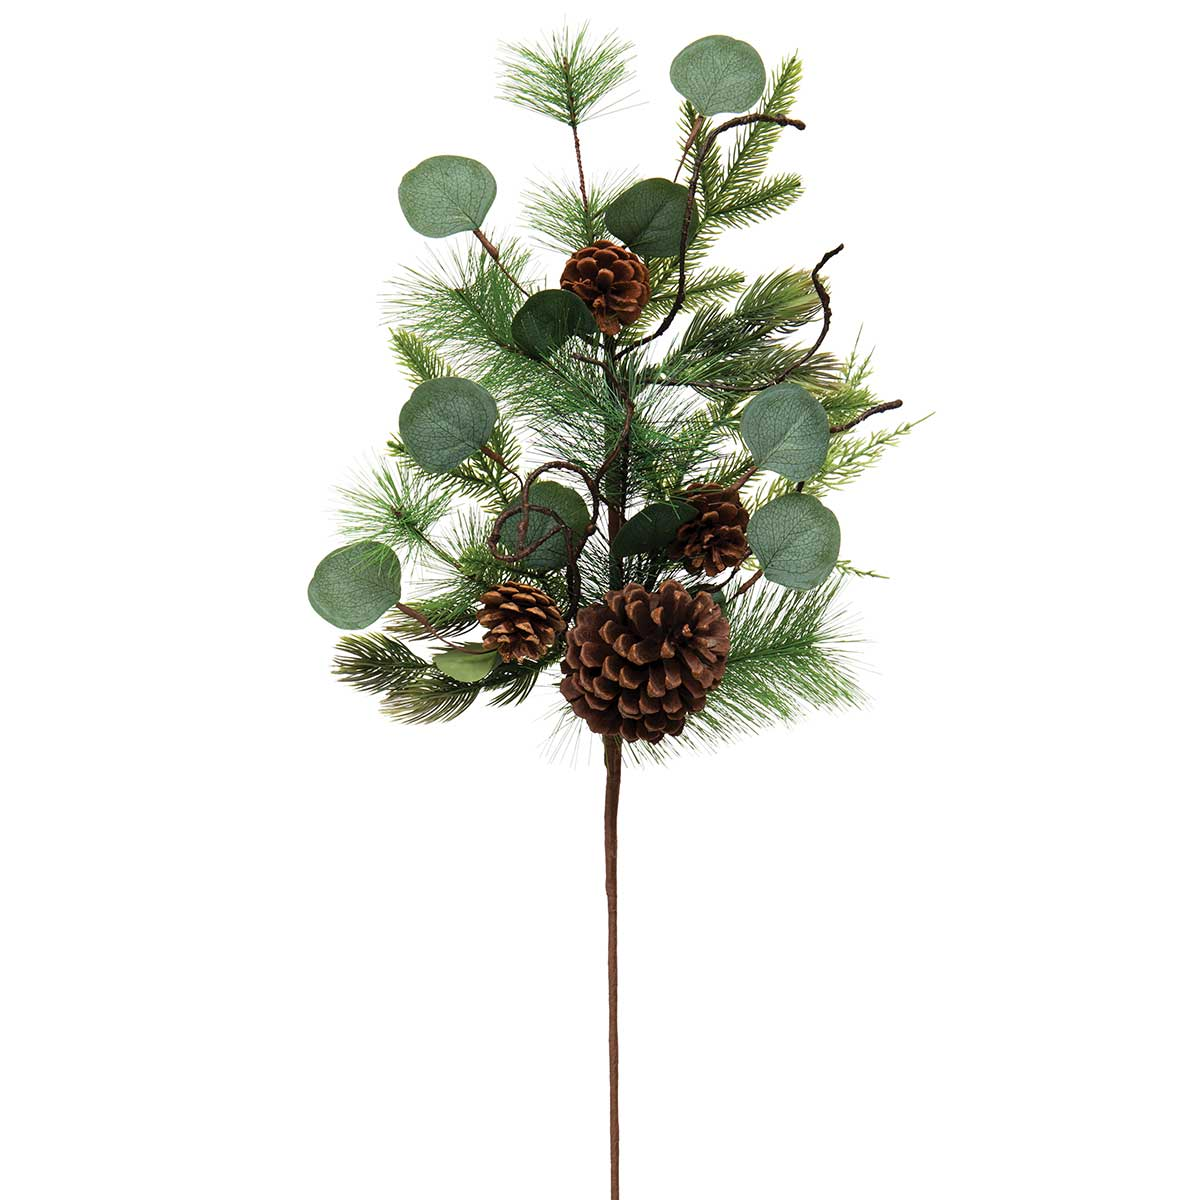 FRESH CUT PINE SPRAY WITH EUCALYPTUS, FAUX TWIGS AND